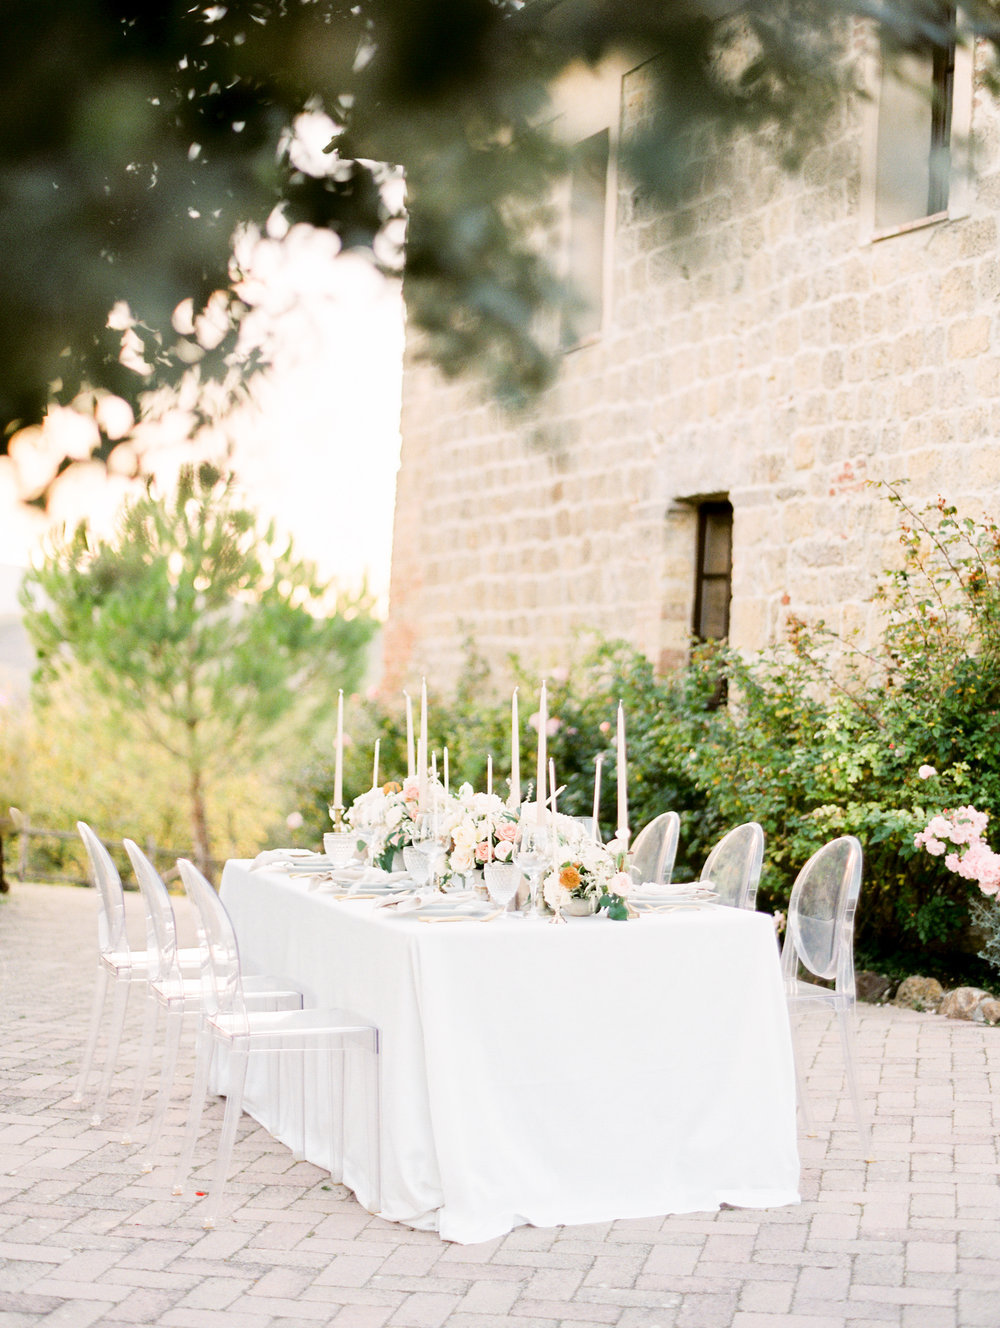 romantic-italy-wedding-in-tuscany-93.jpg